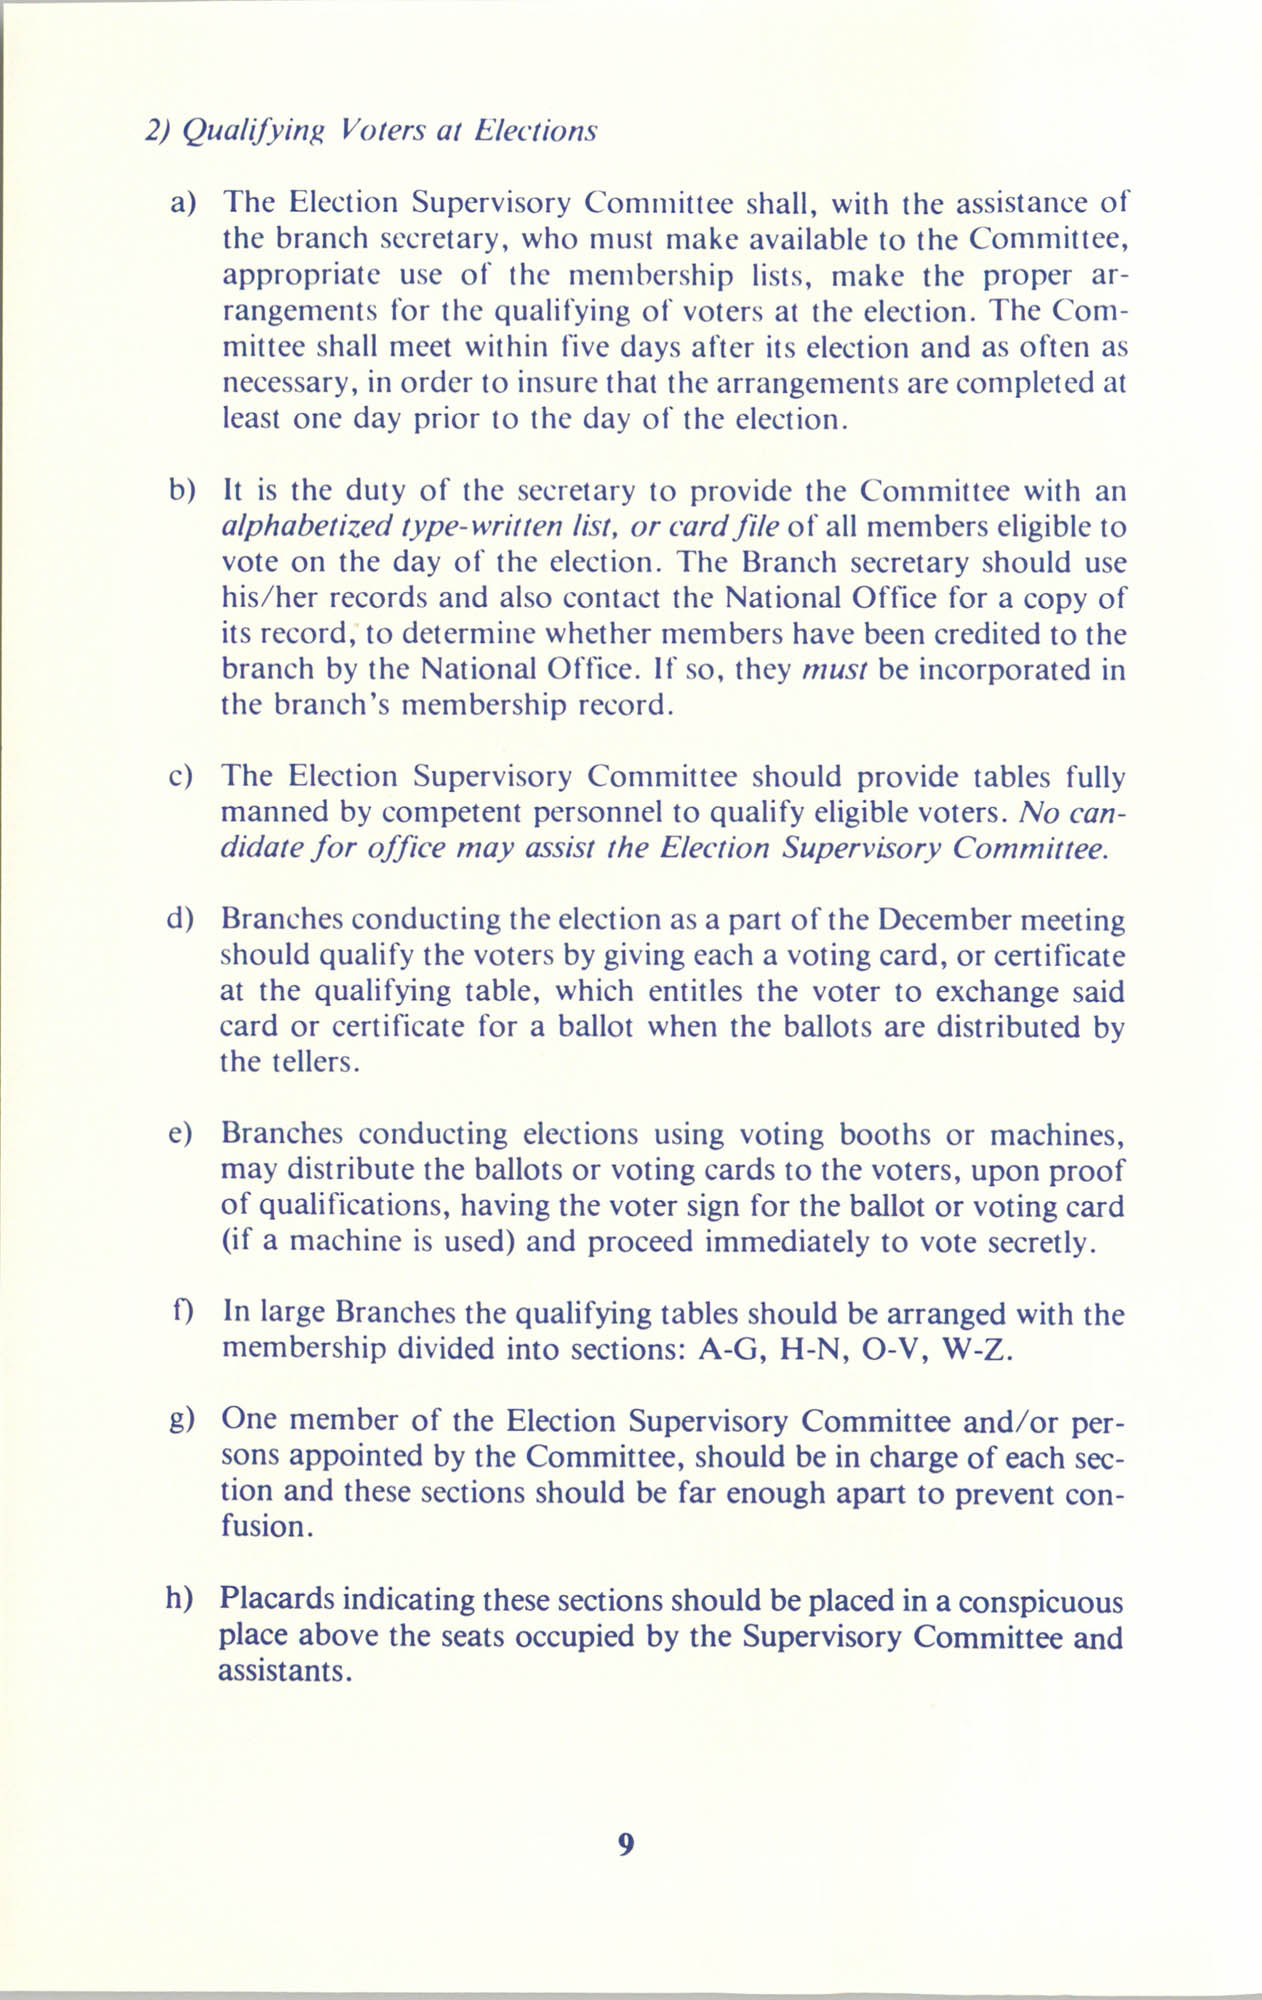 Manual on Branch Election Procedure, Page 9